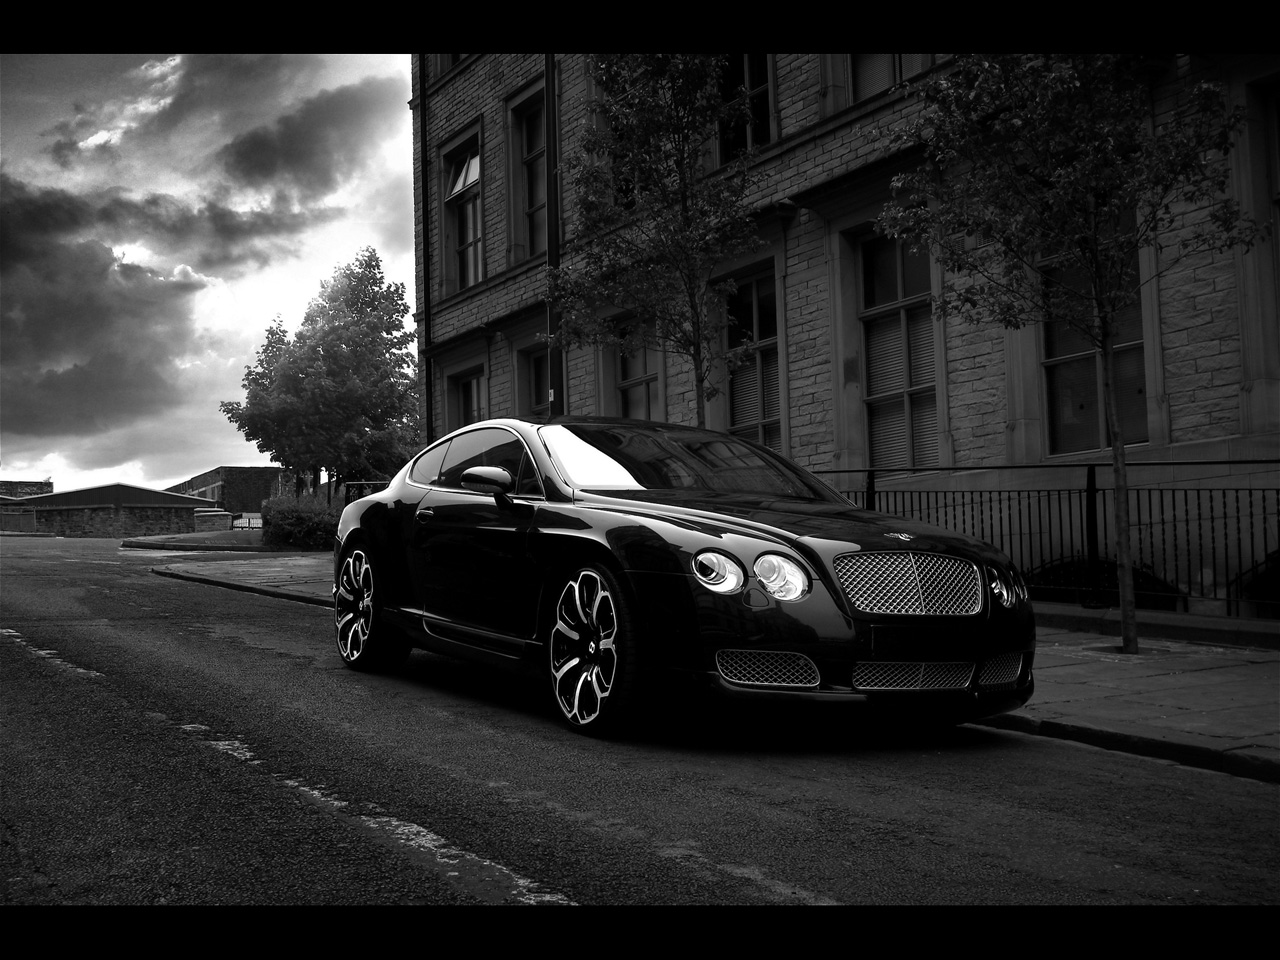 Black Car Wallpaper High Resolution 22 Thumb